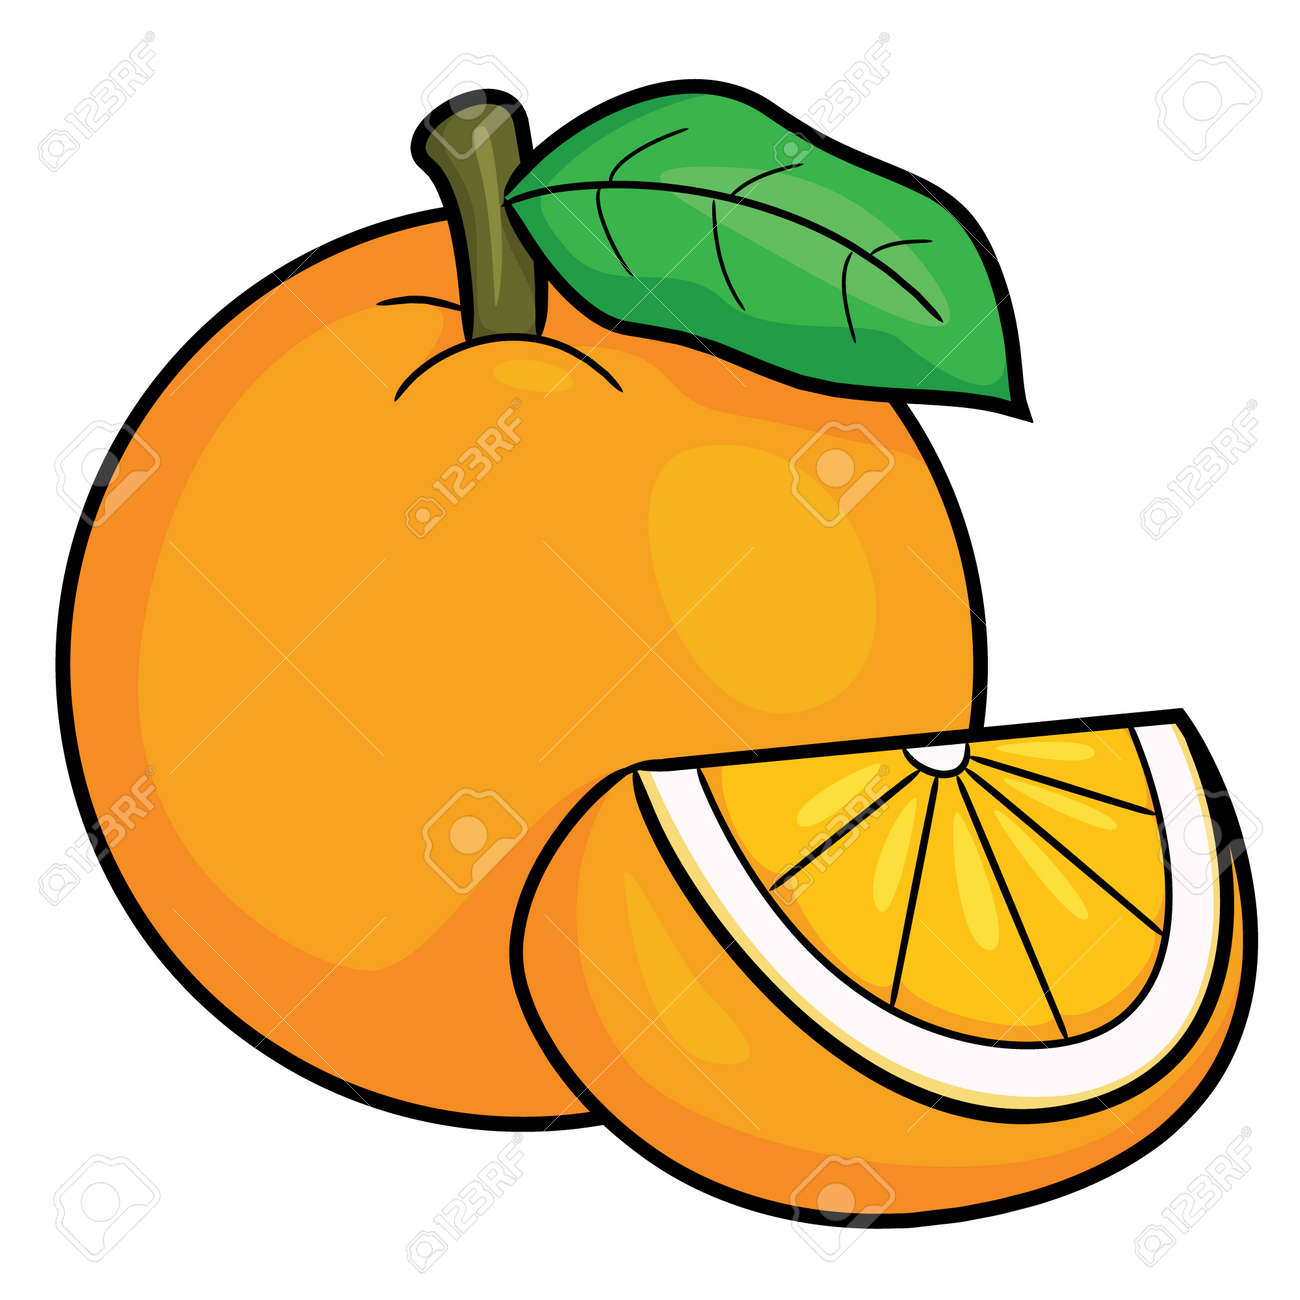 Orange Fruit Cartoon Pictures